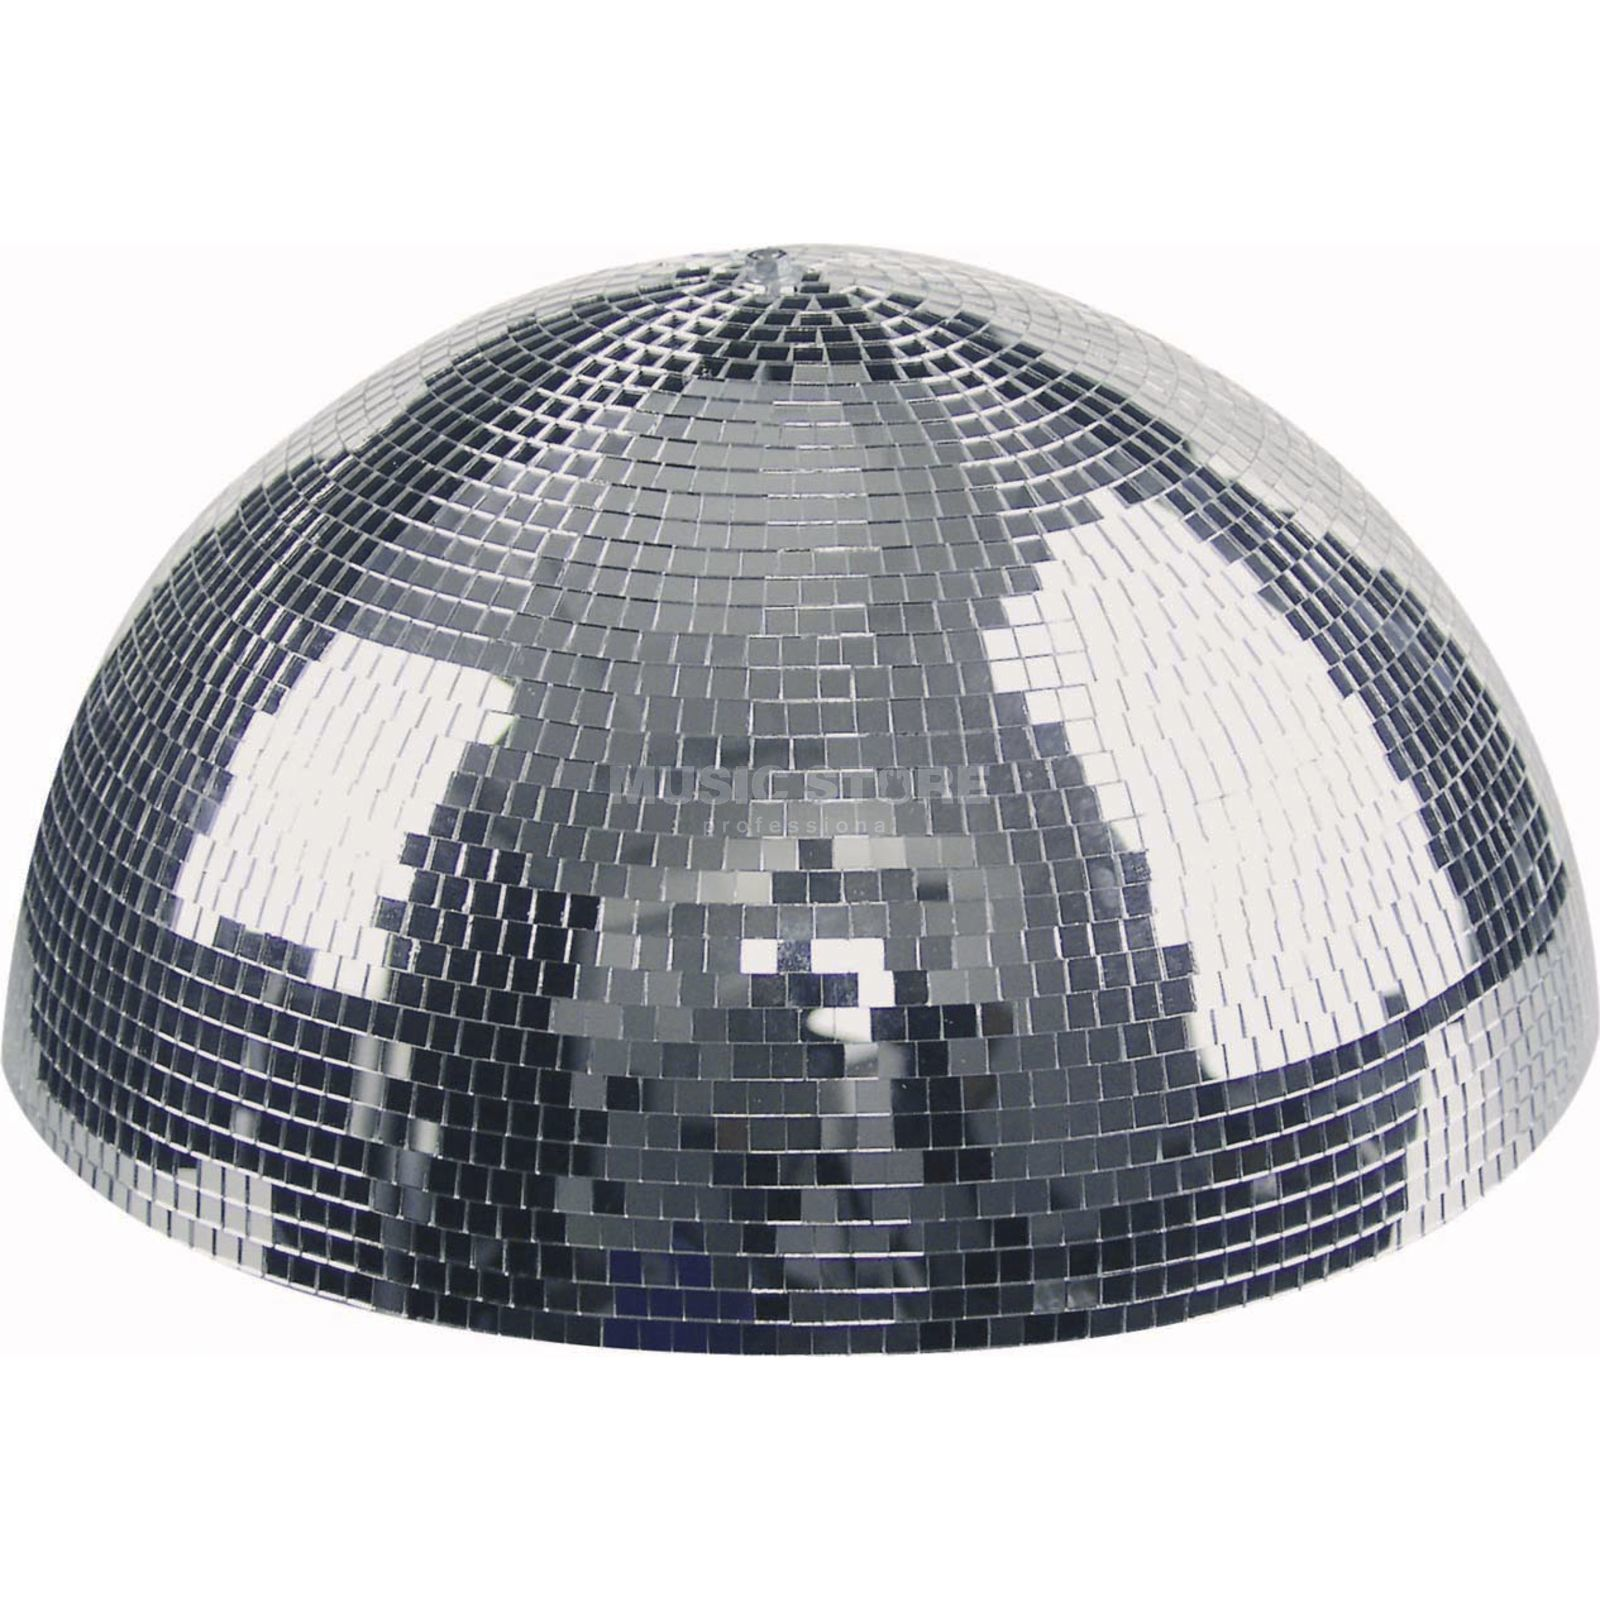 lightmaXX Half Mirror Ball 40cm Incl. Engine and suspension Produktbillede